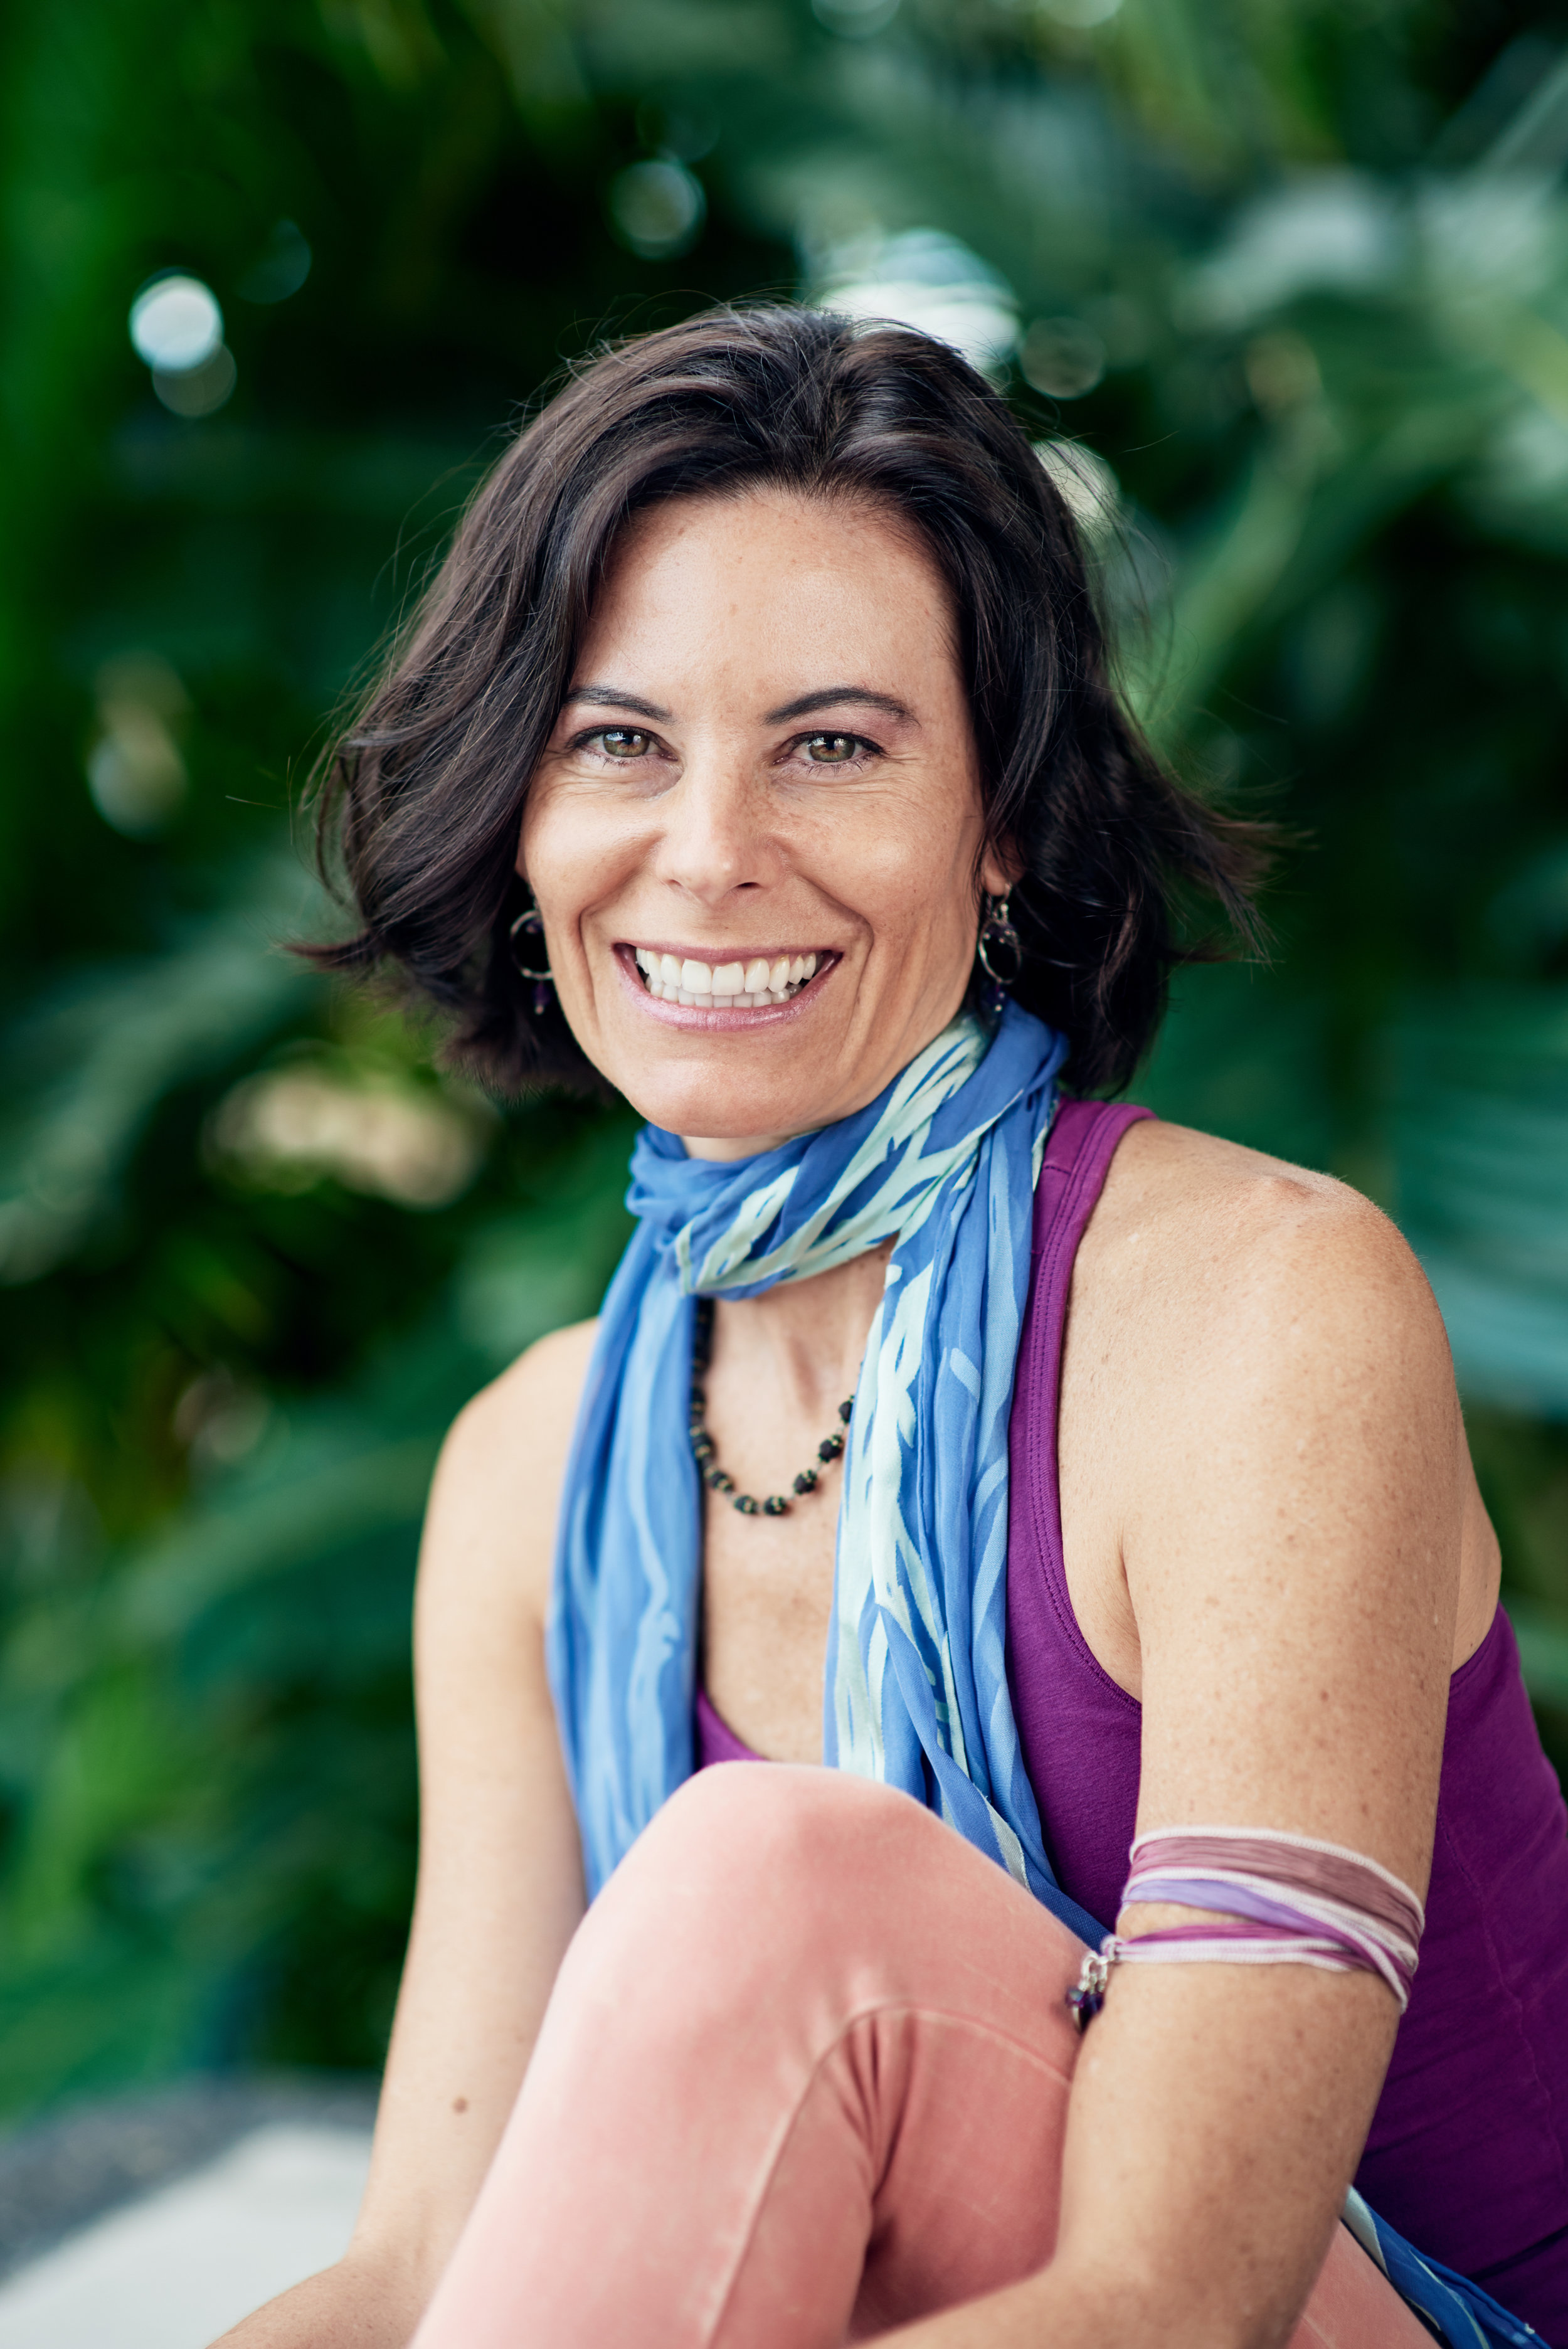 """Jennifer Reuter - Jennifer discovered yoga in 1998, after receiving her first copy of the Bhagavad Gita, and has been passionately inquiring yogic philosophy ever since. She studies extensively with many different teachers finding great value in exploring every style yoga has to offer. For 10 years she formally studied deep tantric meditation and was initiated as an """"acharya"""" and authorized teacher of Neelakantha Meditation by Blue Throat Yoga. She's also a level 2 certified Irest yoga nidra teacher. Jennifer has been leading teacher trainings and advanced yogic studies since 2009. You will find her classes, lectures and retreats """"interdisciplinary"""" inviting both ancient and modern day tools. Her teachings are intelligent, pragmatic and always heartfelt. Jennifer is the founder of Yoga Unplugged, a platform that brings teachers and healers together to host events and trainings. She believes that collaborating enables her to offer a wider variety of philosophies, teaching styles and healing modalities to her students and envisions a day when Yoga Unplugged is a brand that doesn't just belong to one person, but to many people spread across the world with the same core purpose."""